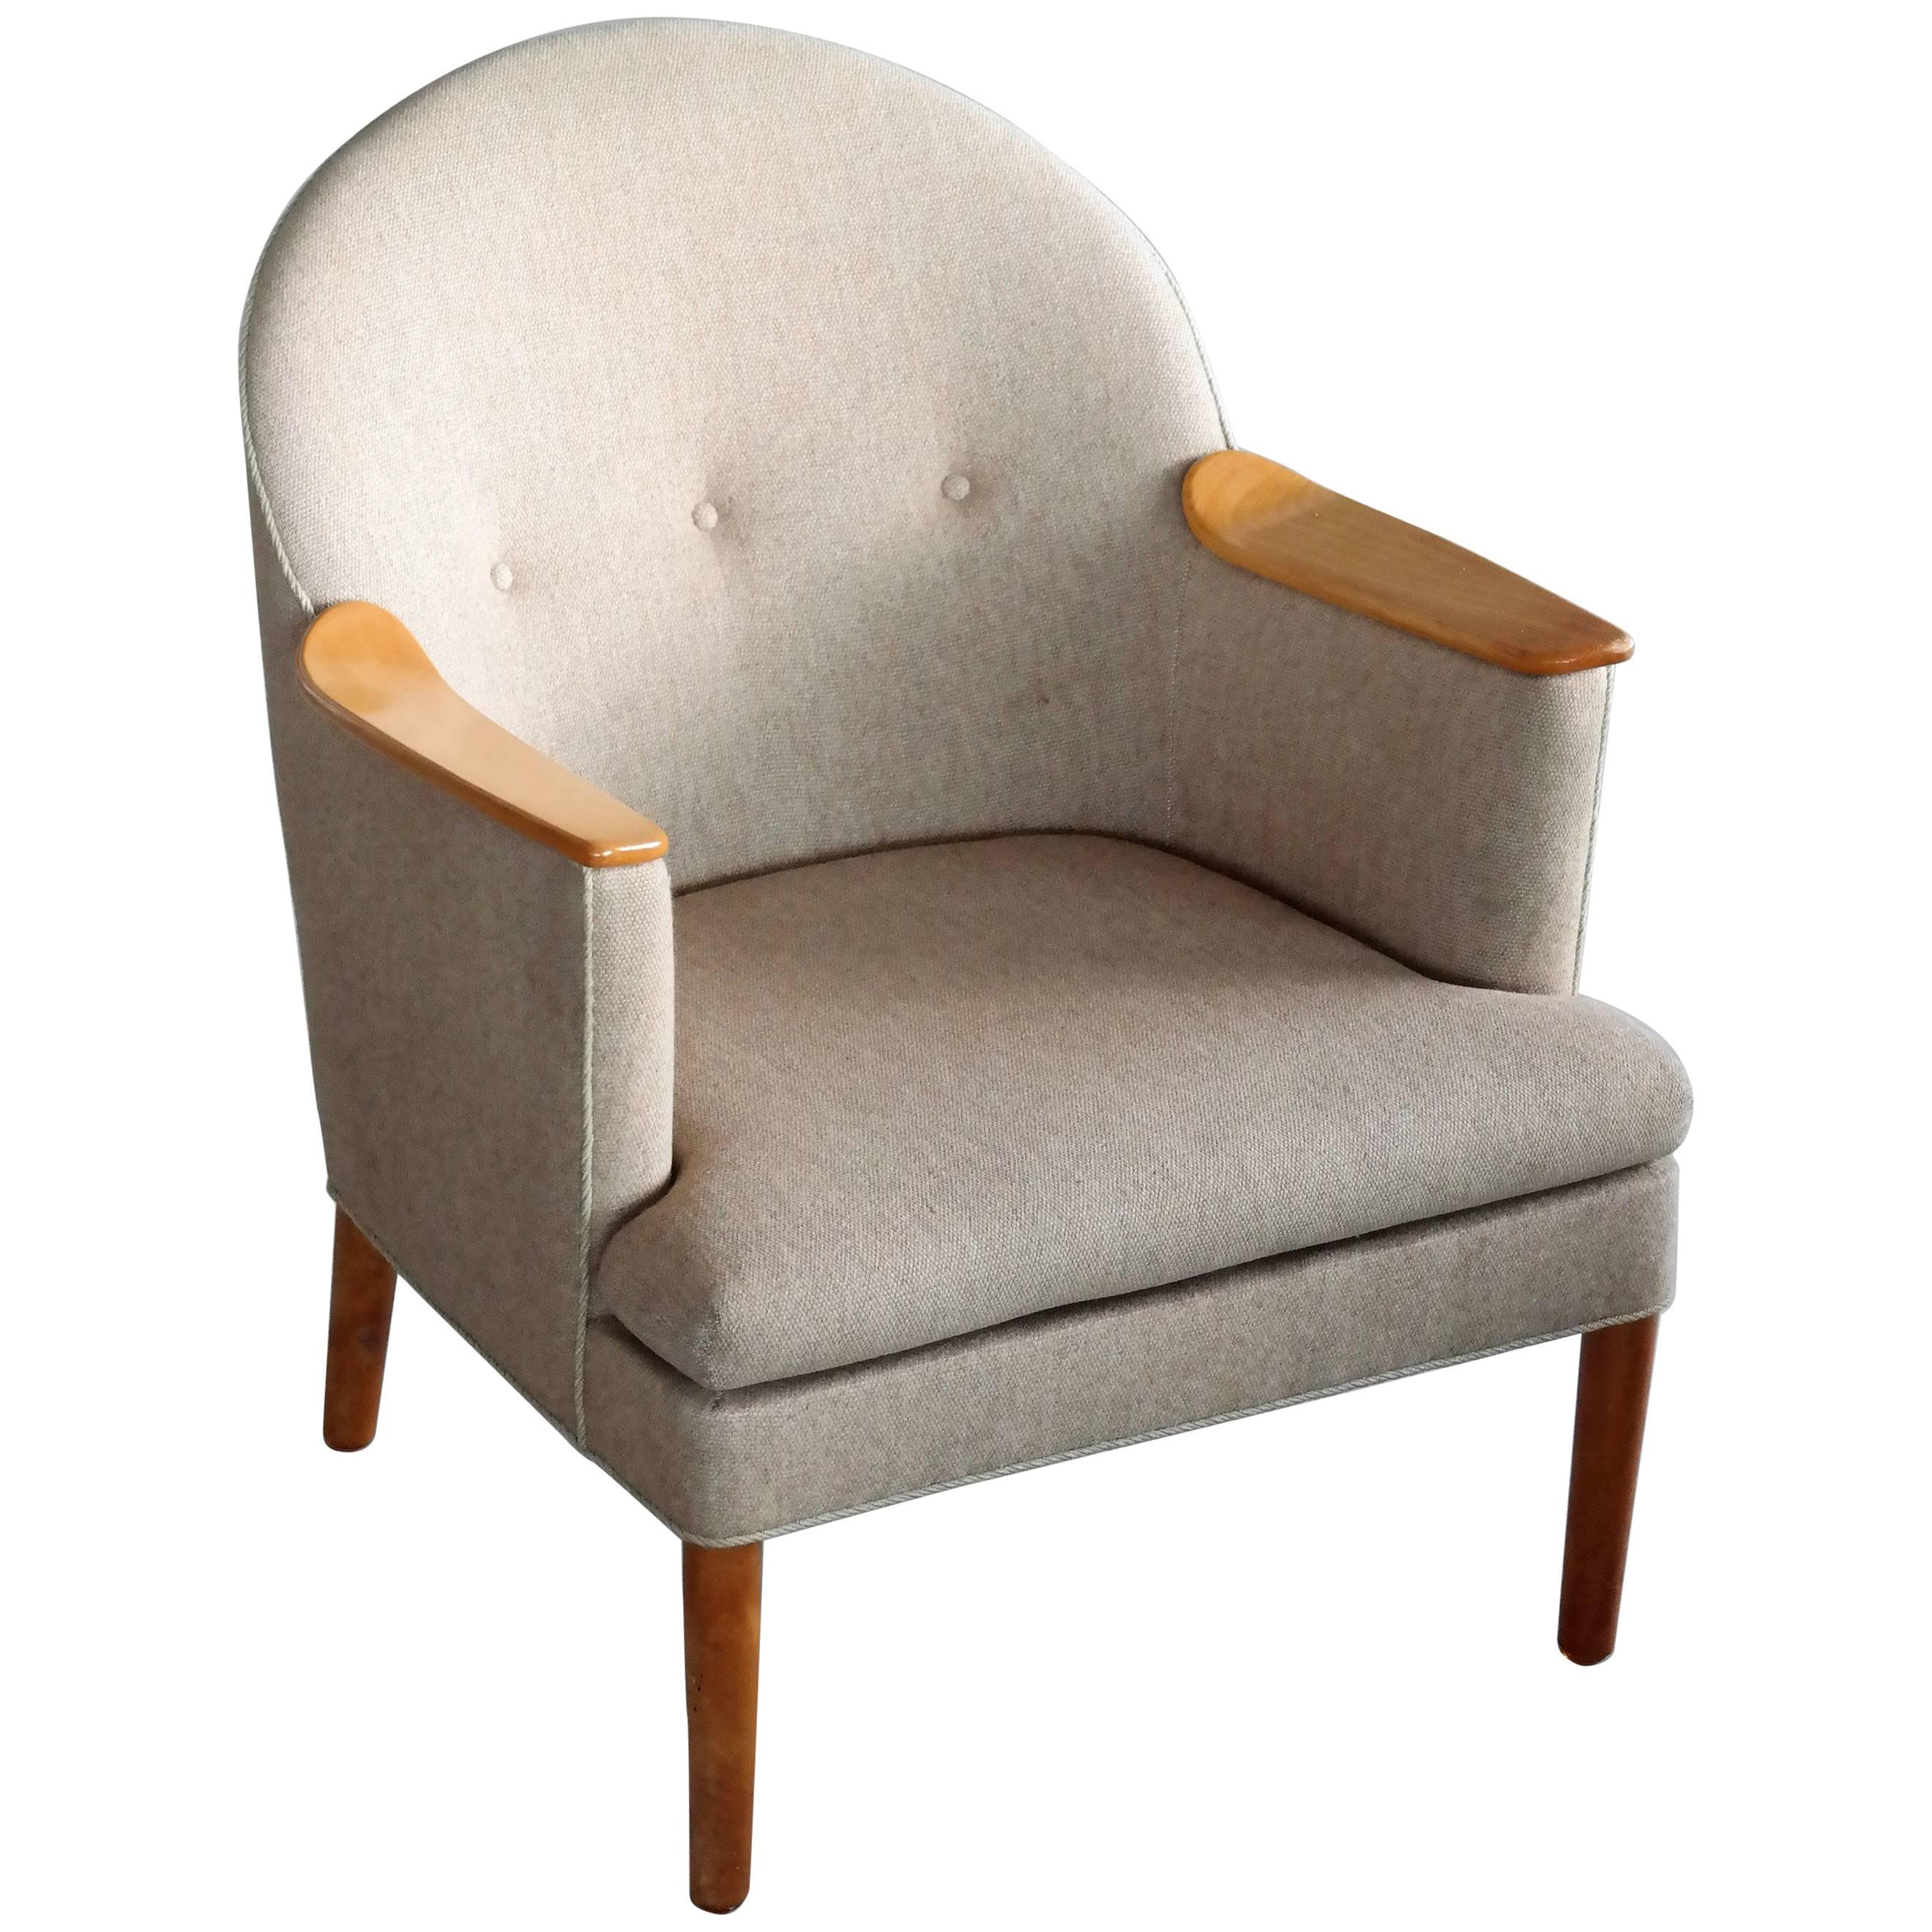 Danish Midcentury Lounge Chair by Poul M. Volther